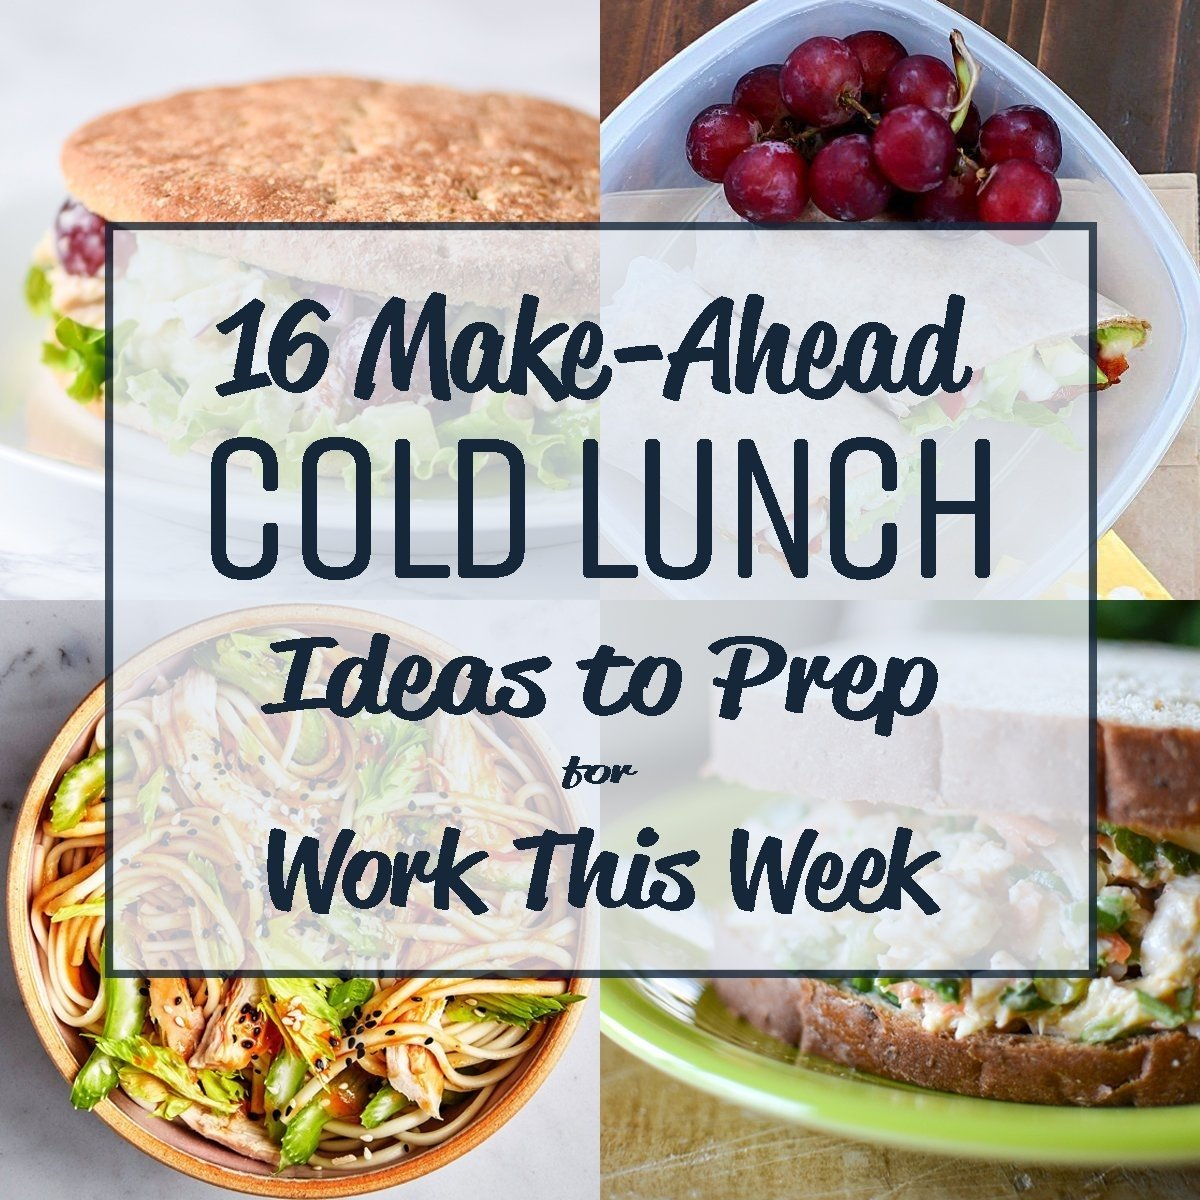 10 Cute Good Lunch Ideas For Work 16 make ahead cold lunch ideas to prep for work this week 3 2020